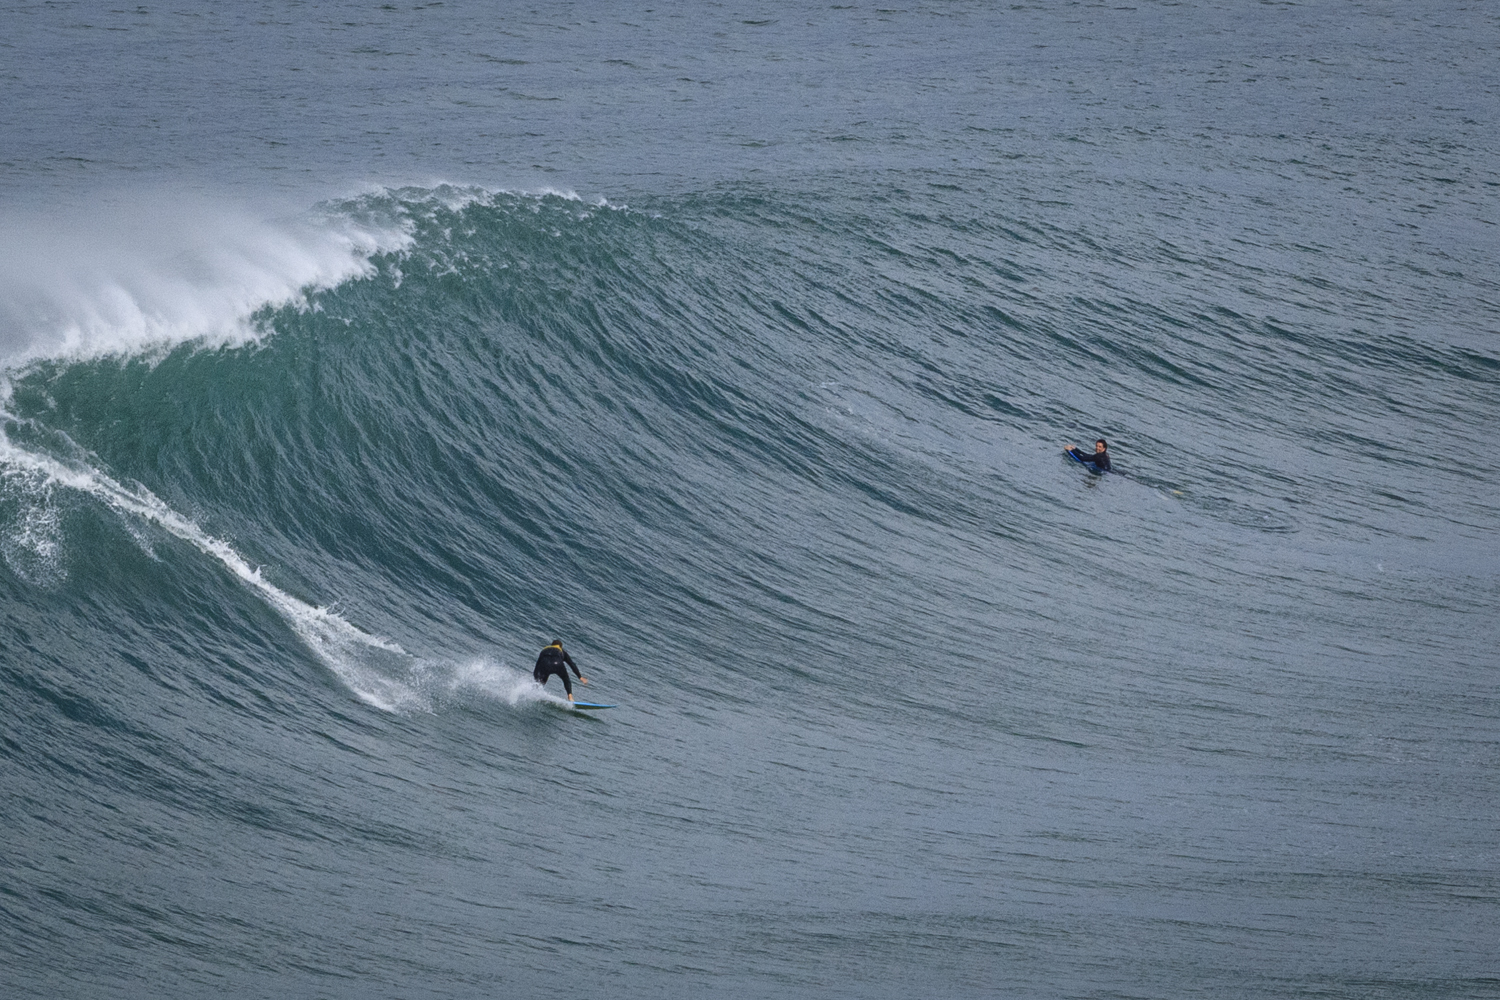 One of the tow surfers reaping the rewards.